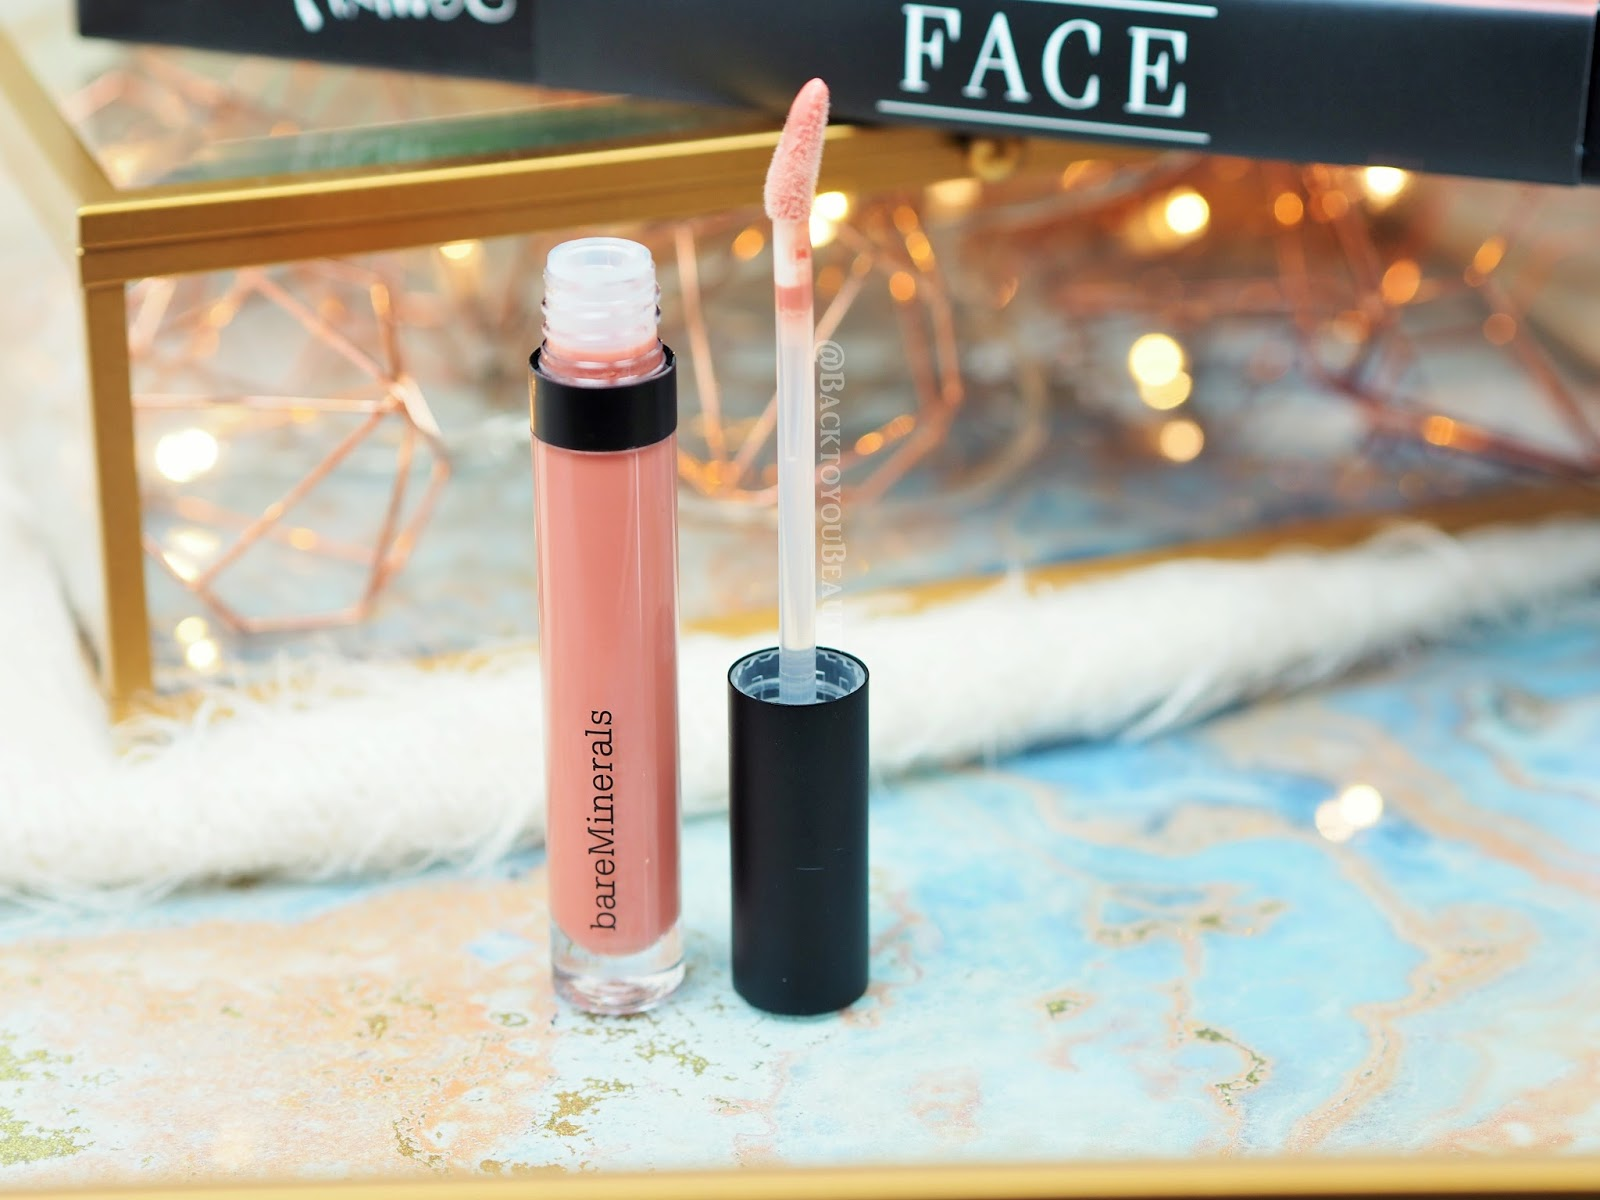 Moxie Plumping Lipgloss in shade Debutante